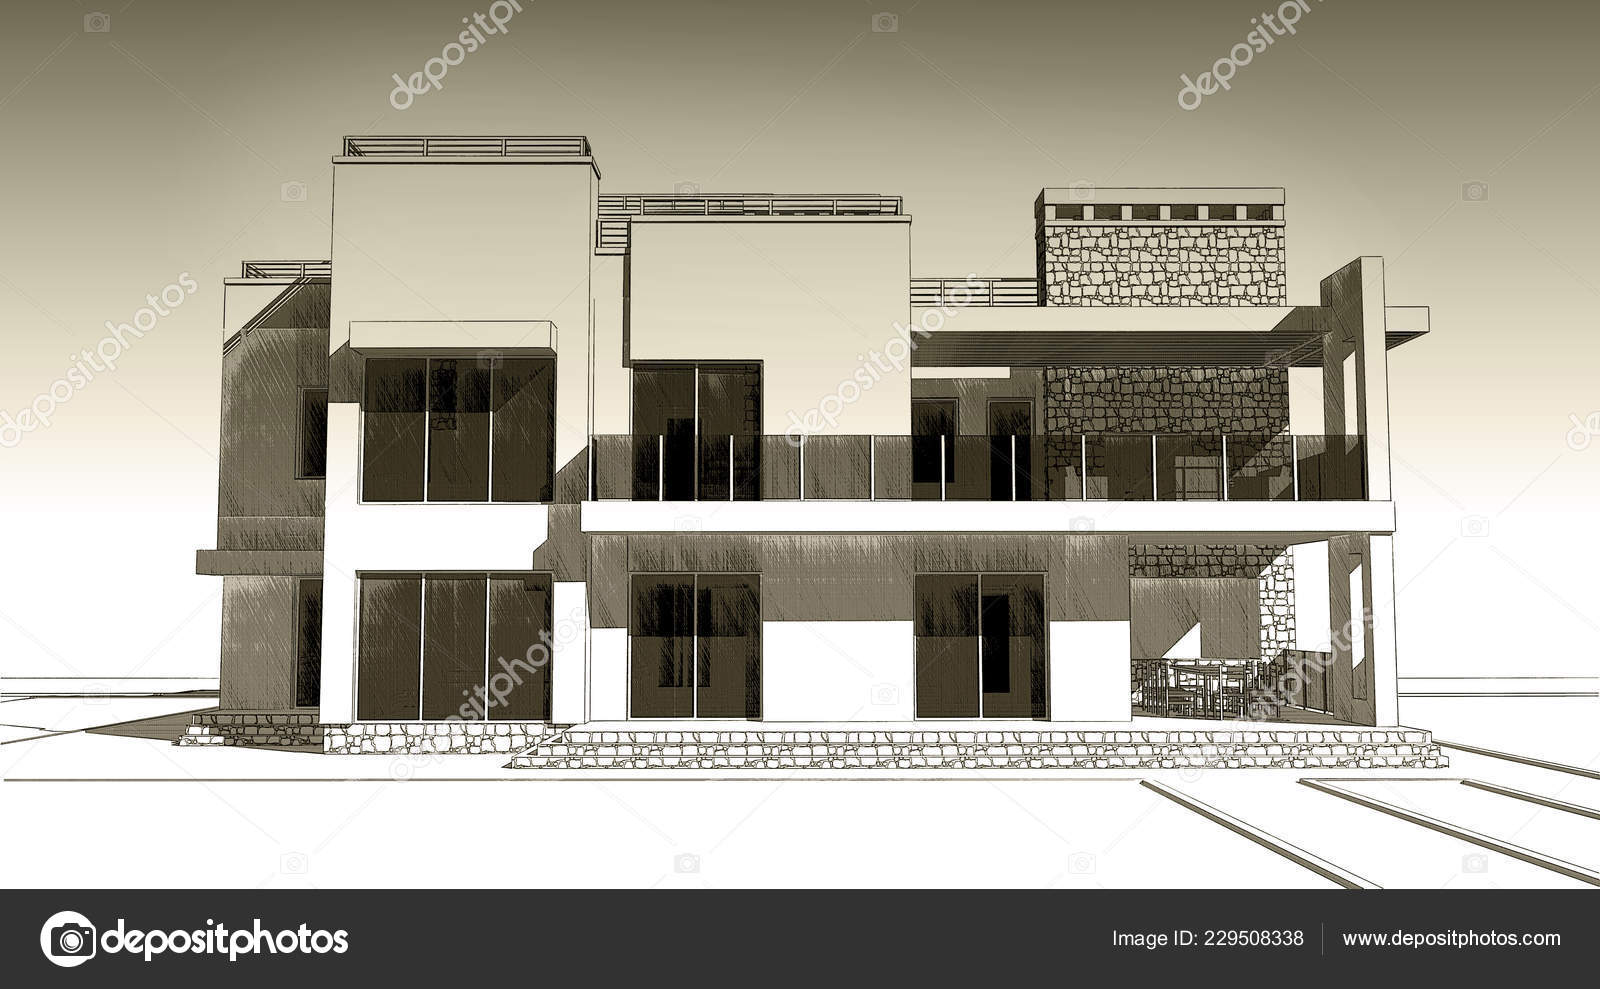 Drawings: pencil of old buildings | Pencil Sketch ...